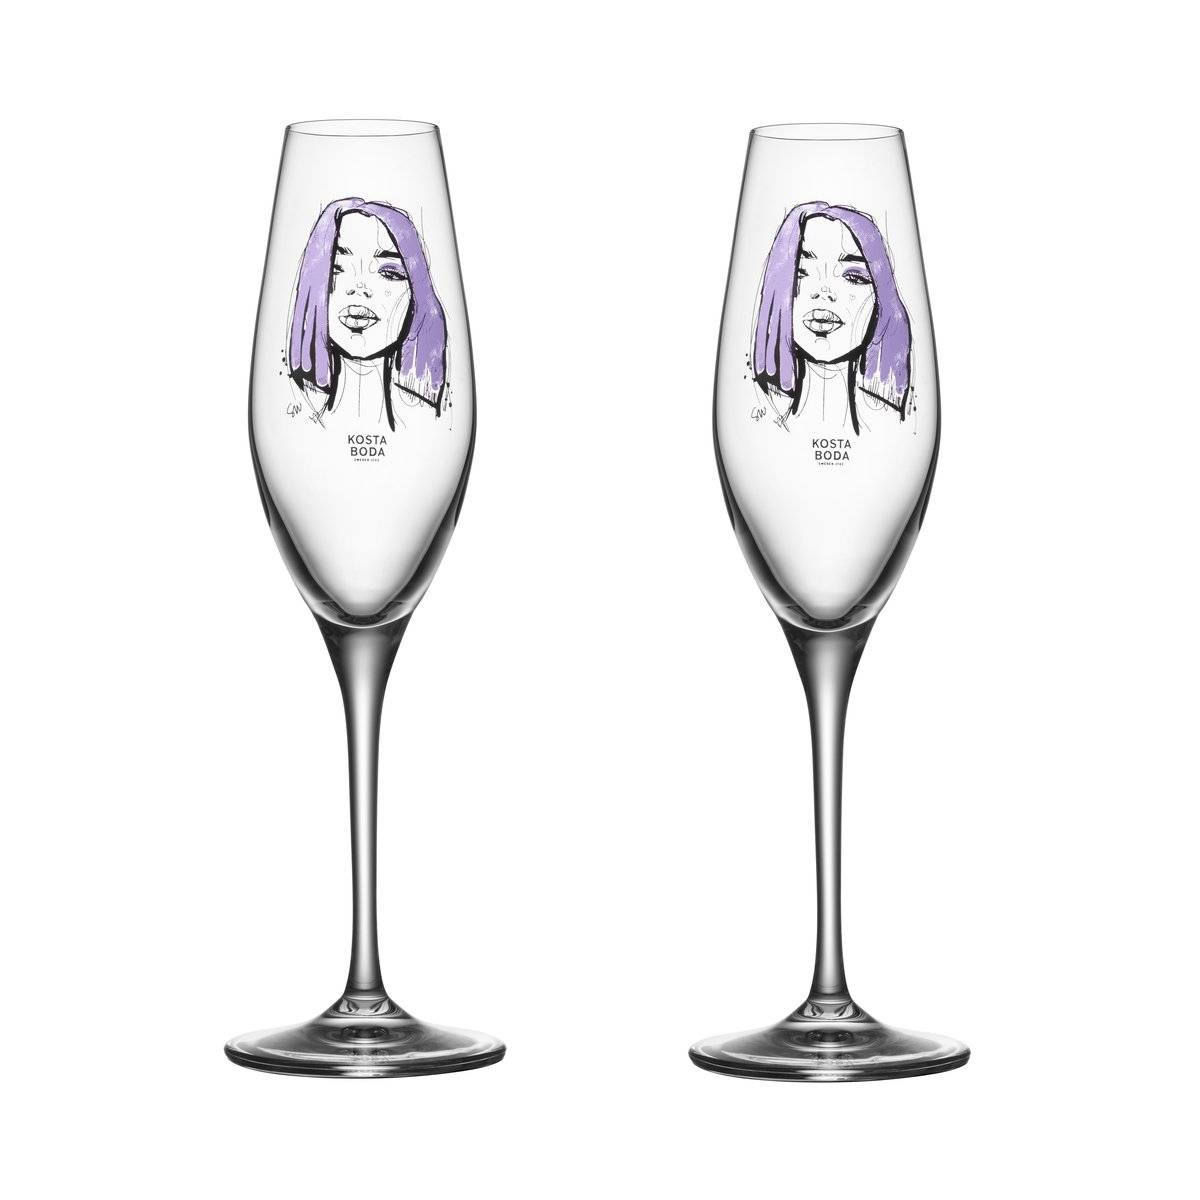 Kosta Boda All about you champagneglass 2-stk. Forever Mine